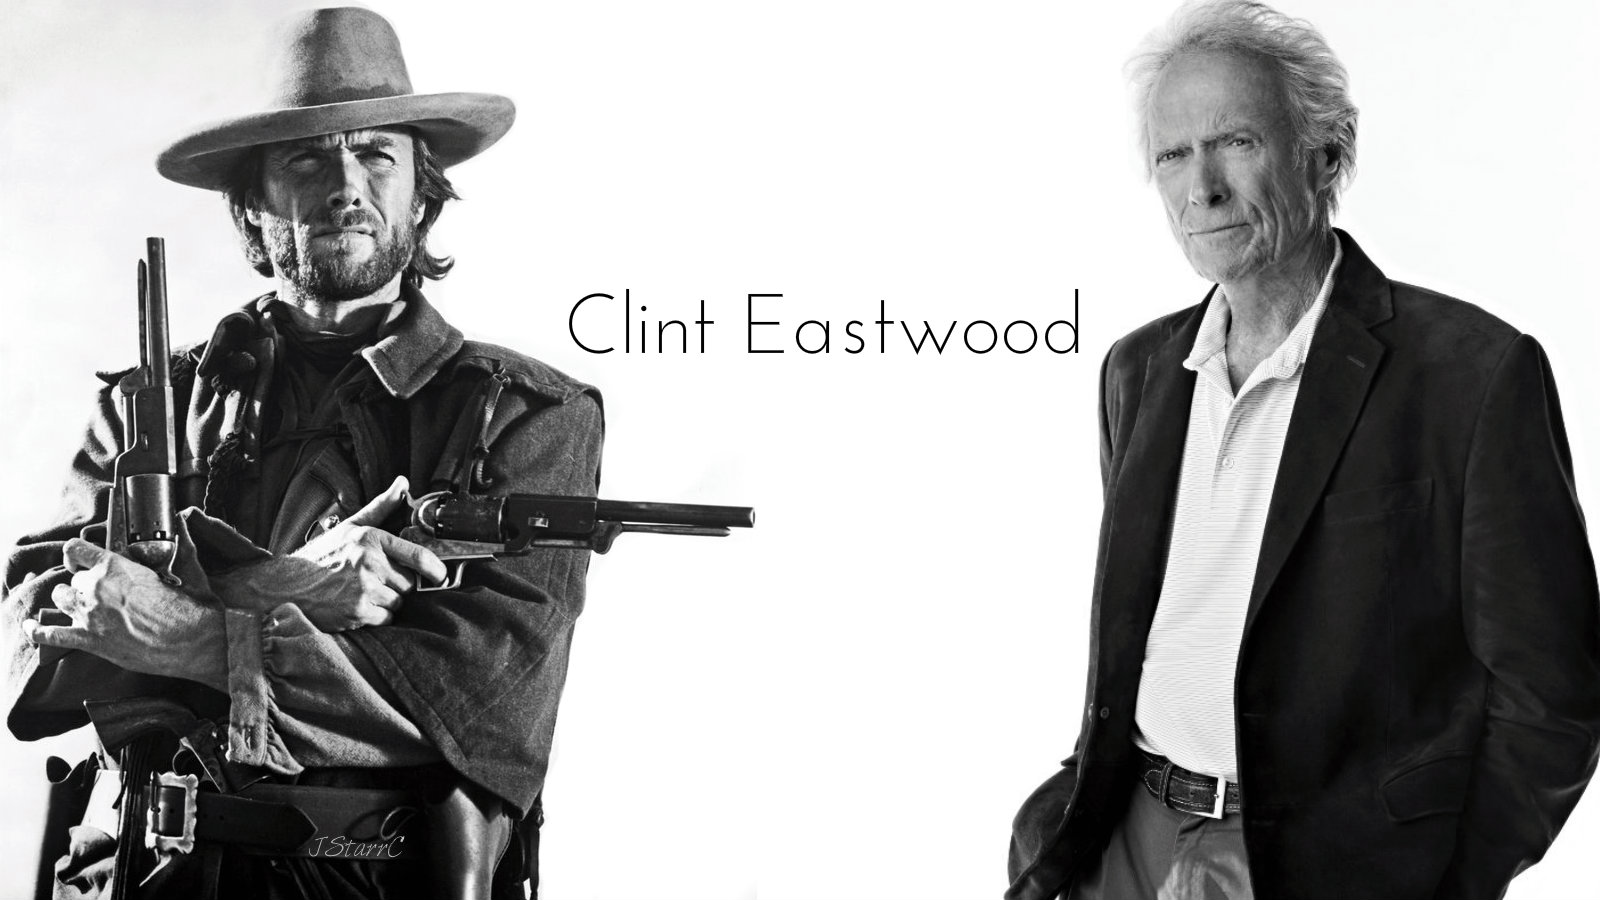 Clint Eastwood Josey Wales Clint Eastwood Wallpaper 41621808 Fanpop